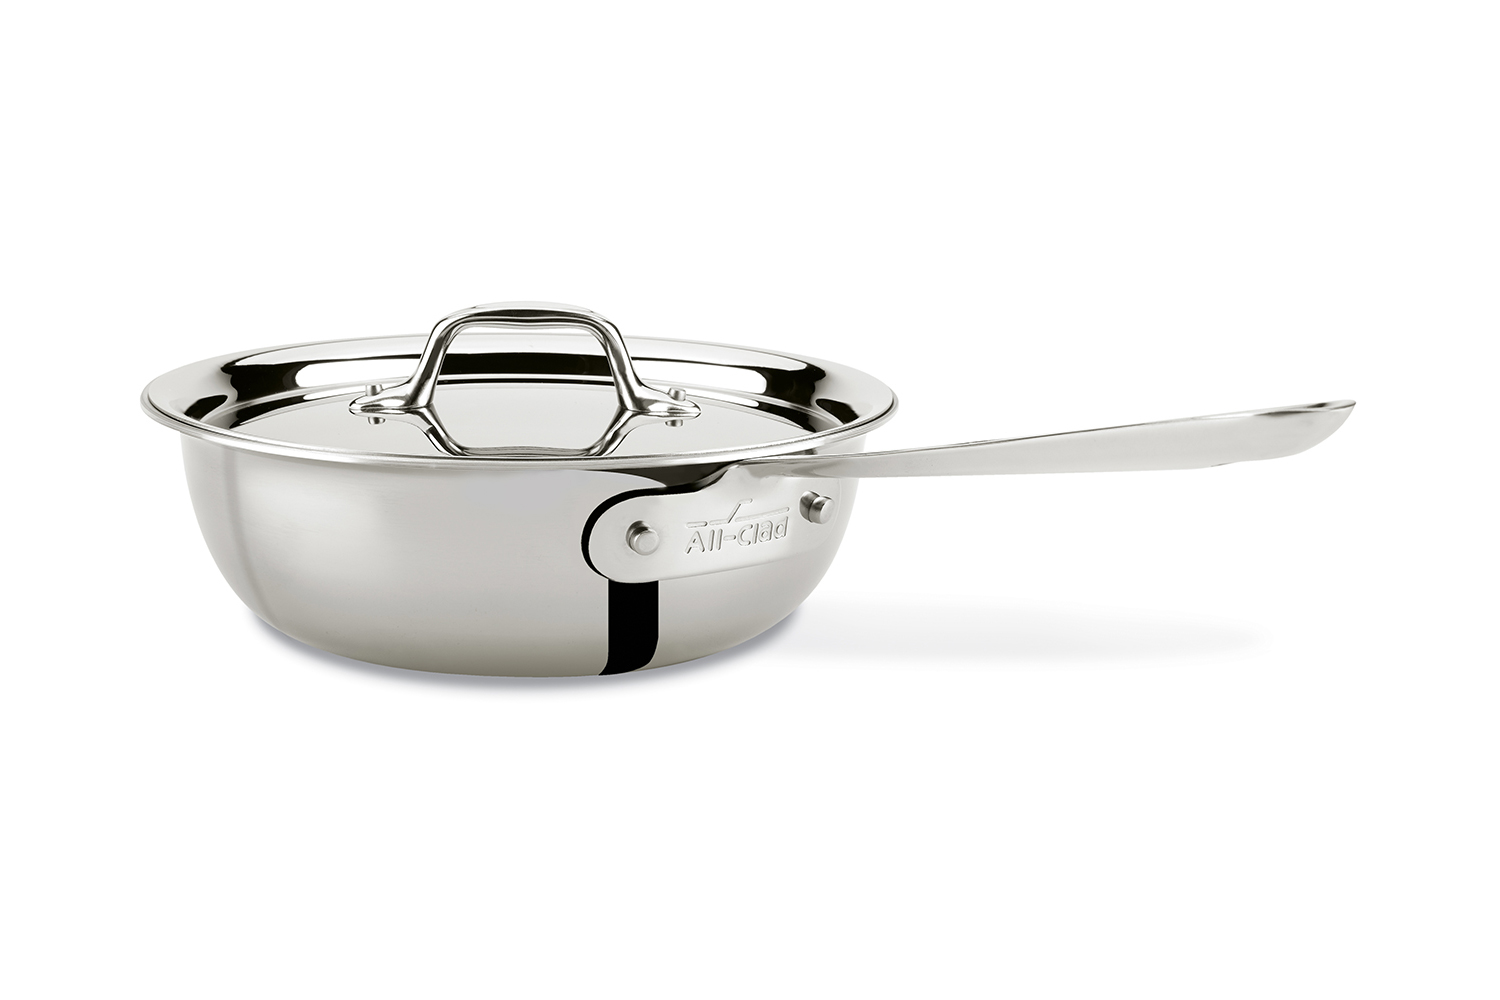 All-Clad d3 Tri-Ply Stainless Steel 2.5 qt. Multipurpose Pan w/Lid